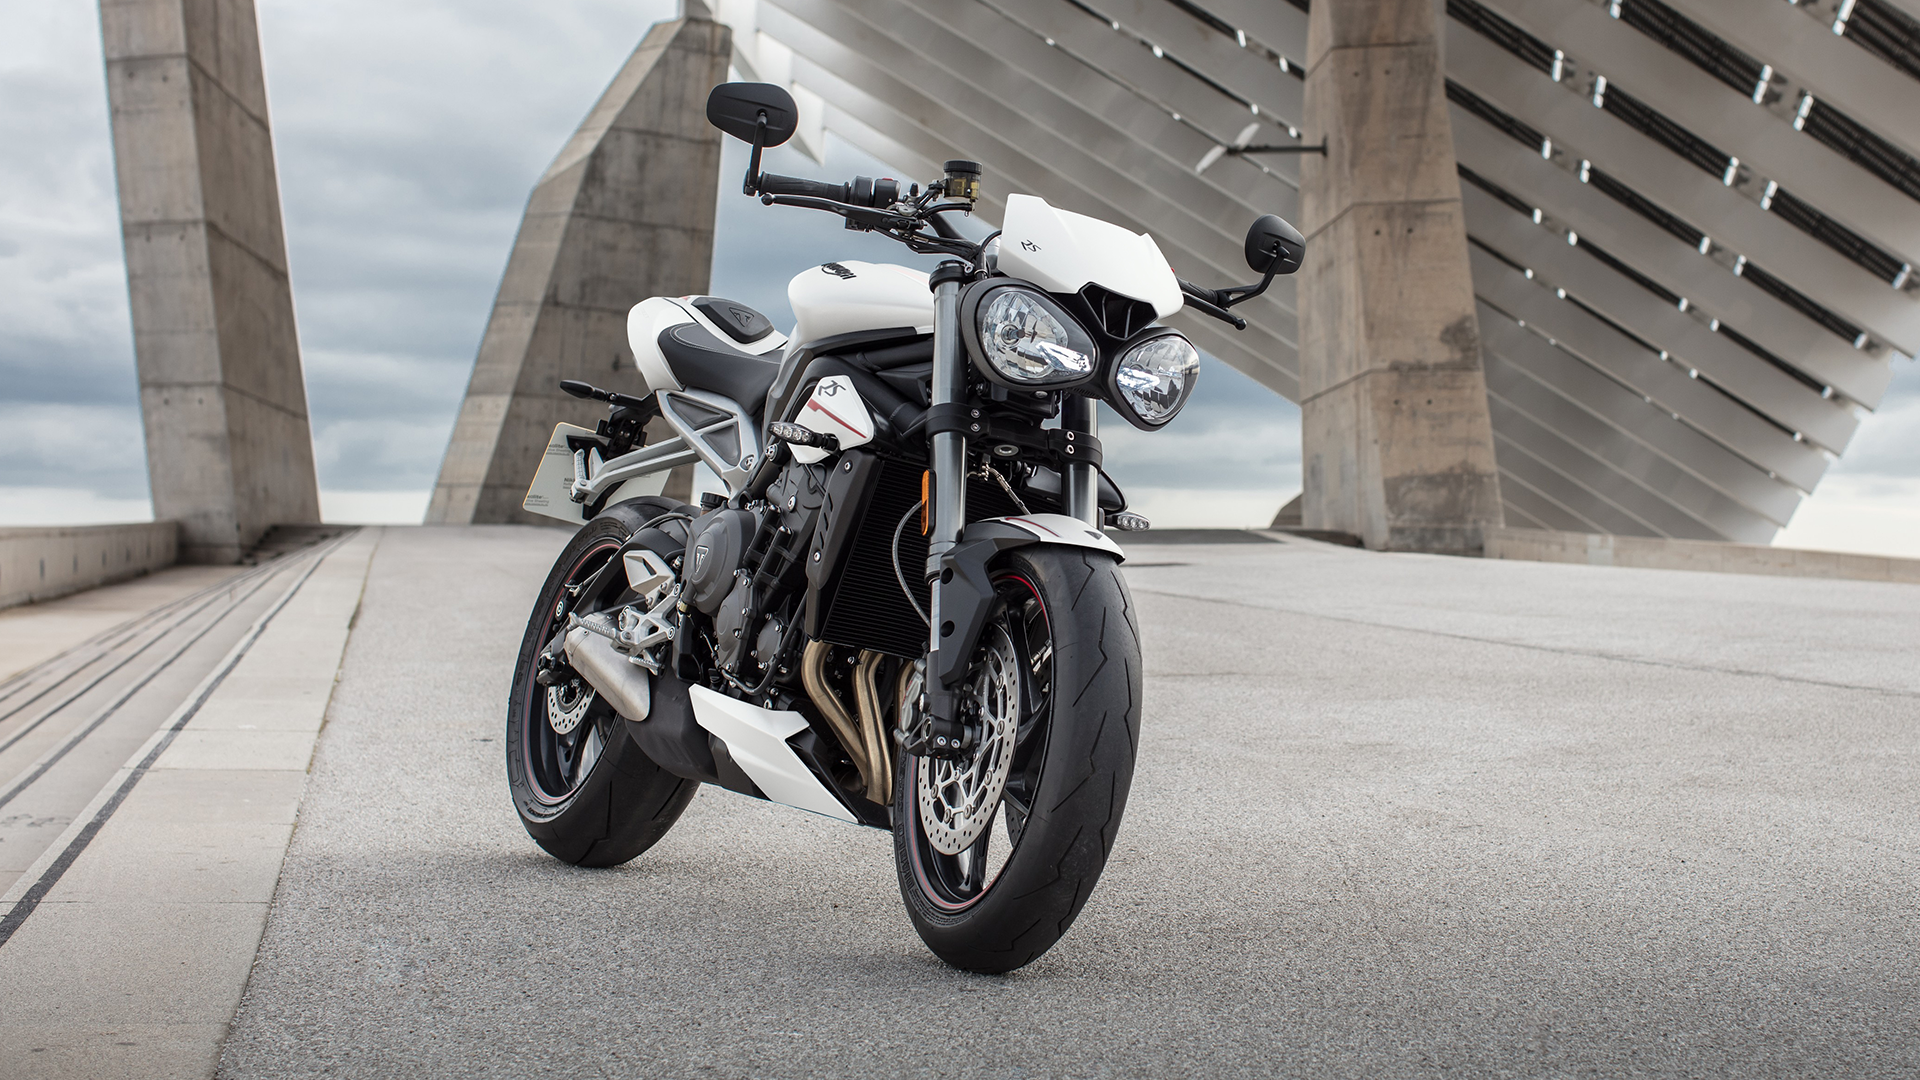 Triumph Street Triple RS in Crystal White stationary in urban setting